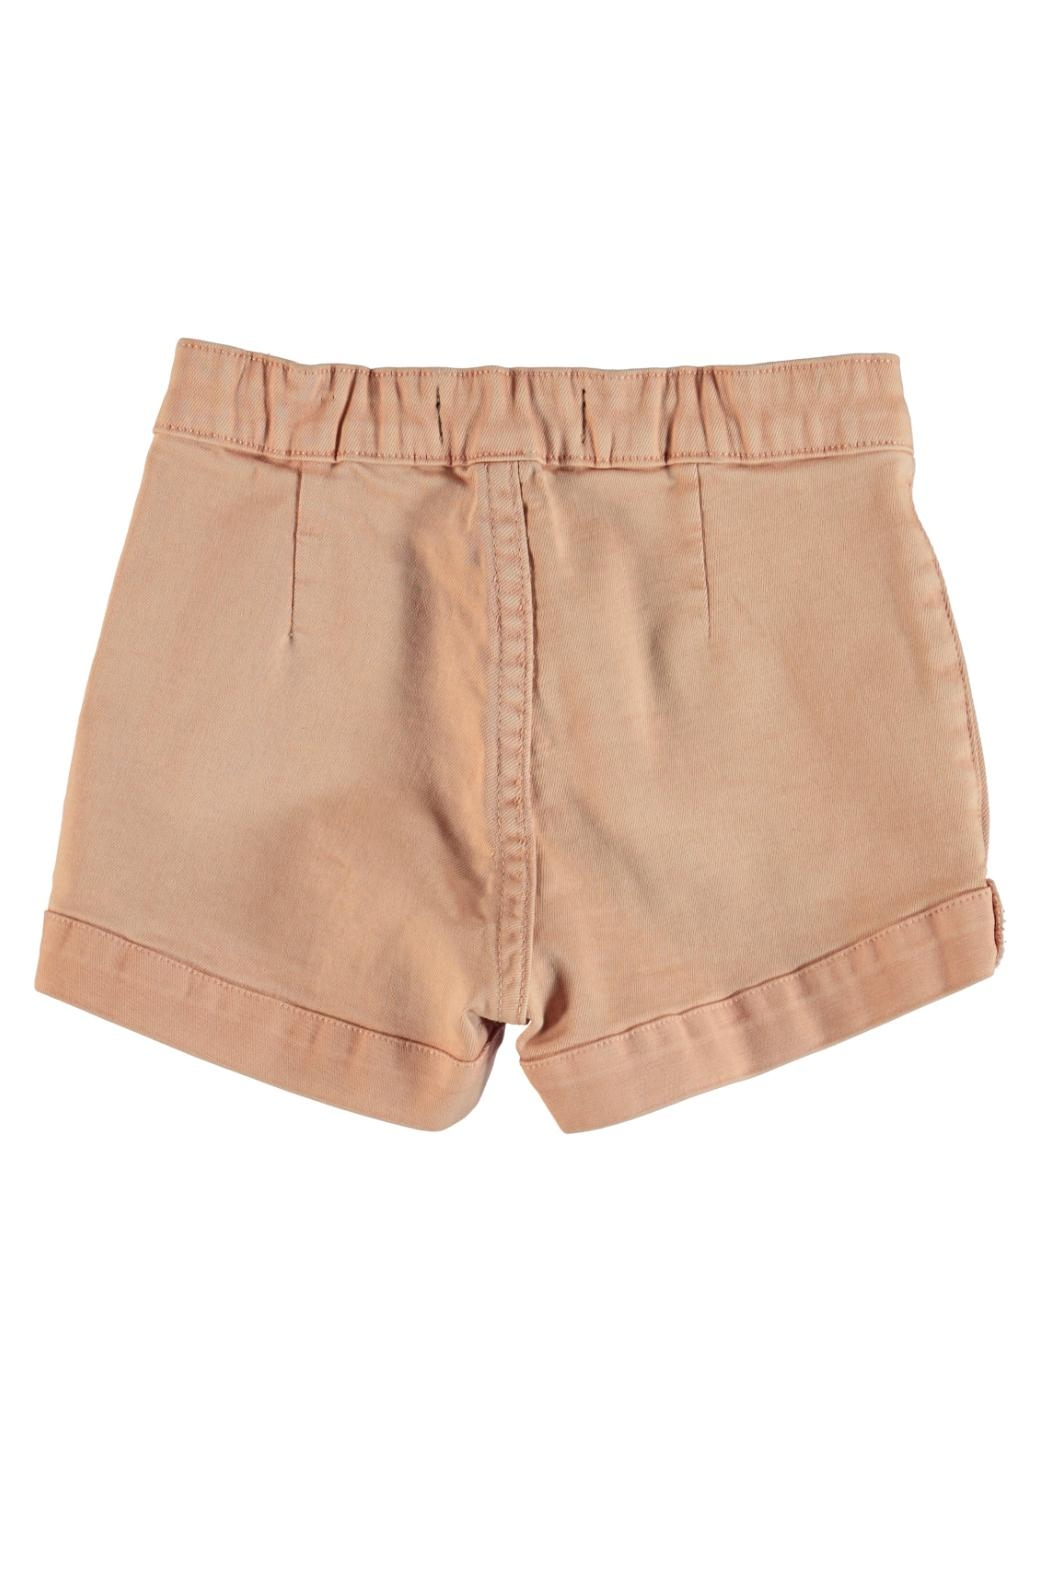 Molo Aleen Shorts - Front Full Image